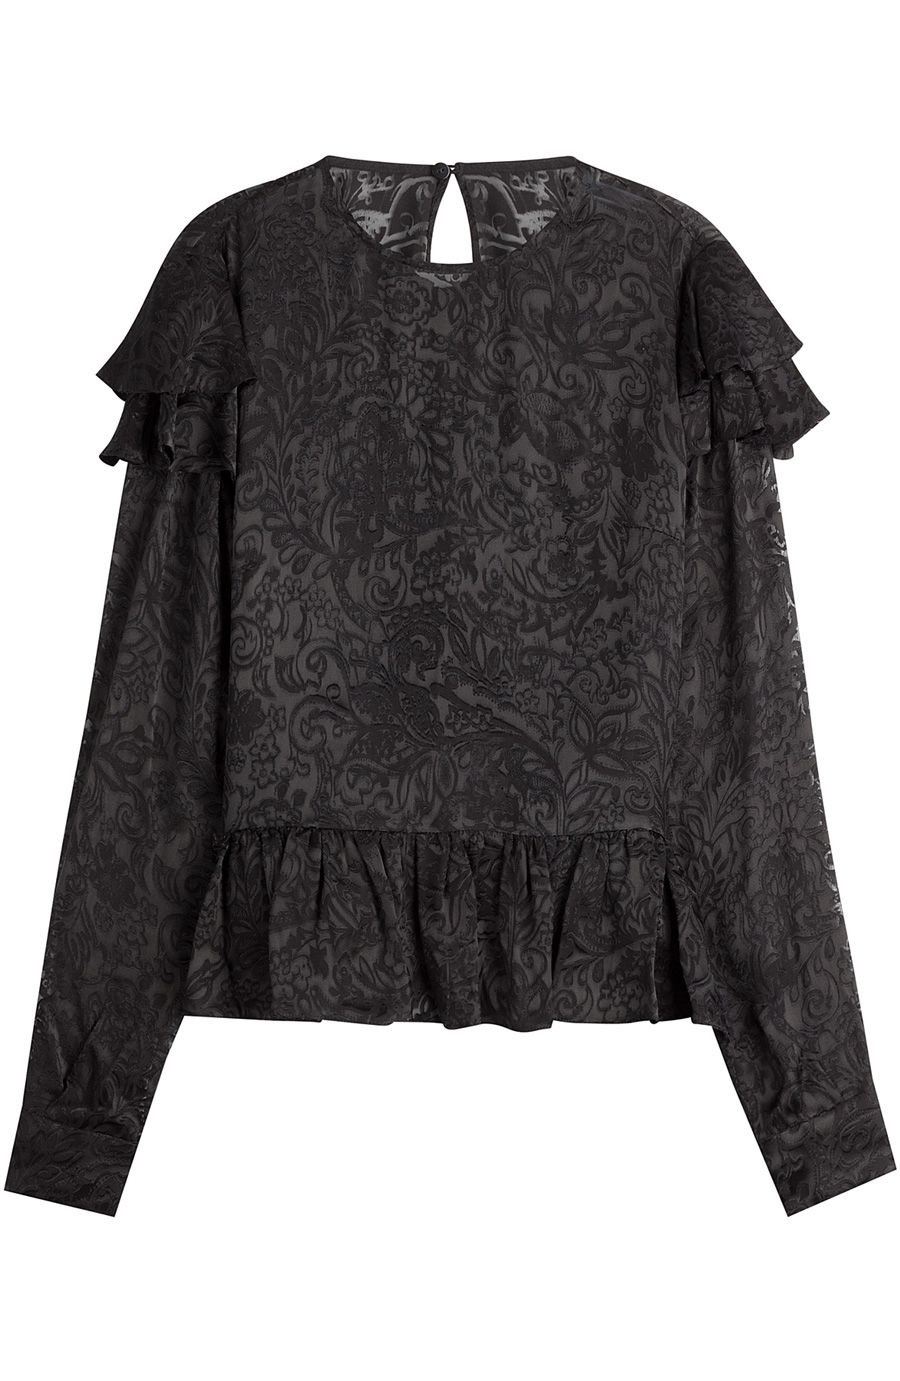 Discount Order SHIRTS - Blouses Preen Store Cheap Price Great Deals Online U4YHrHo